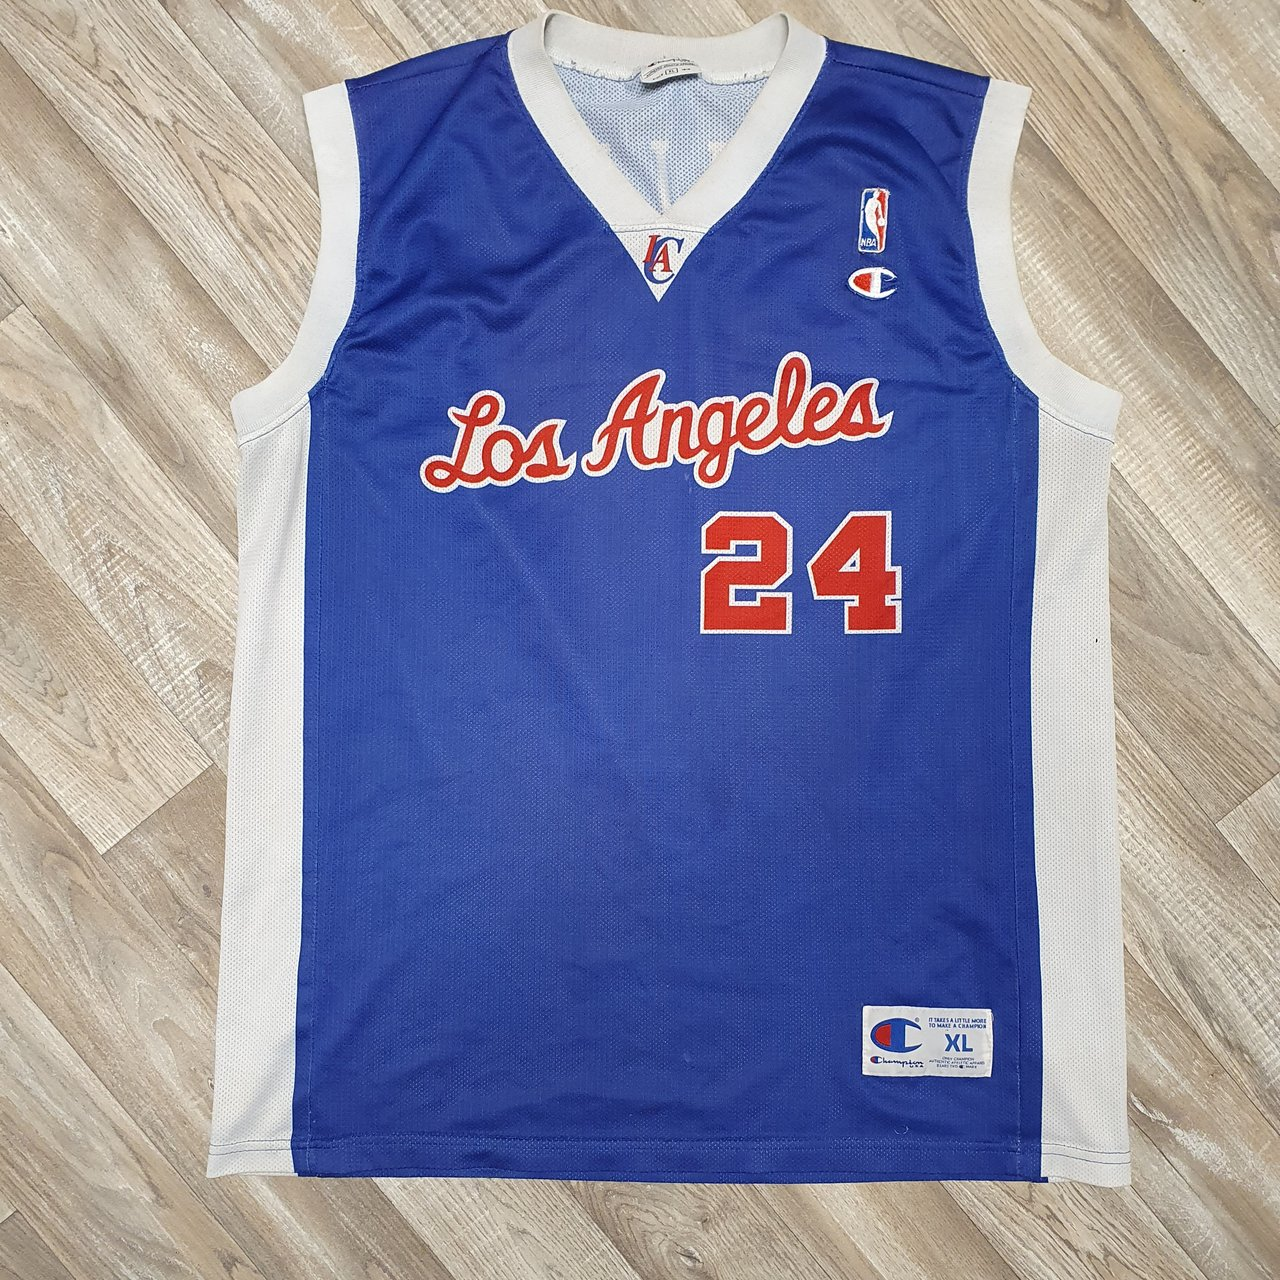 Andre Miller Los Angeles Clippers Jersey Size XL...